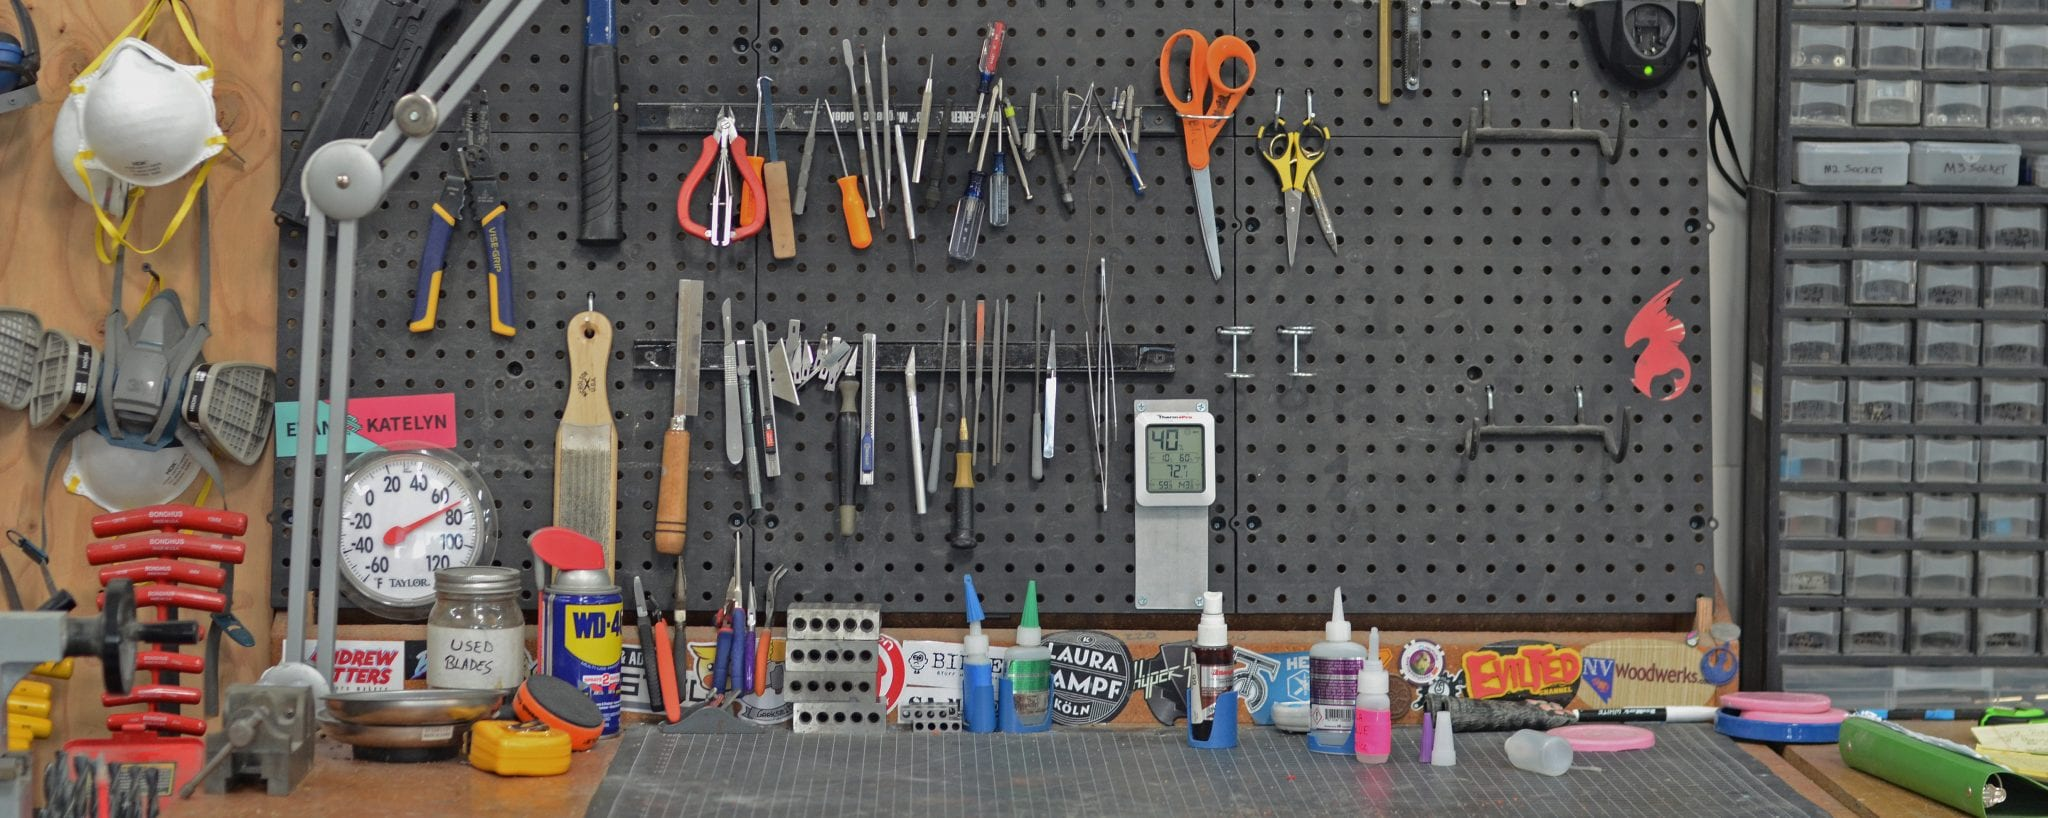 Bill's Prop and Costume Making Tools - Punished Props